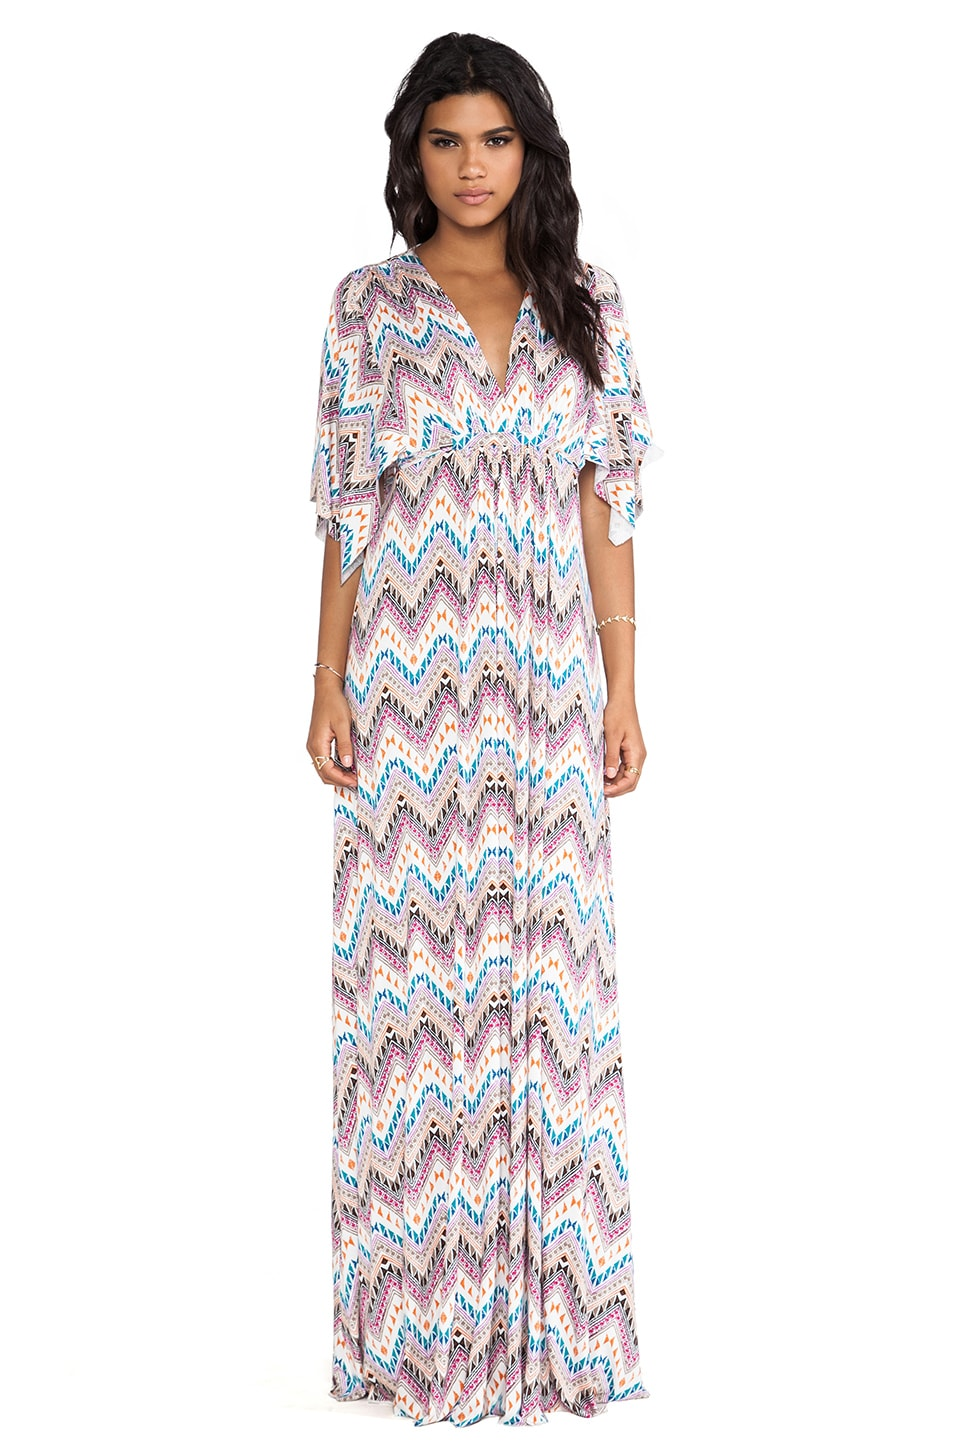 Rachel Pally Long Caftan Dress in Zig Zag